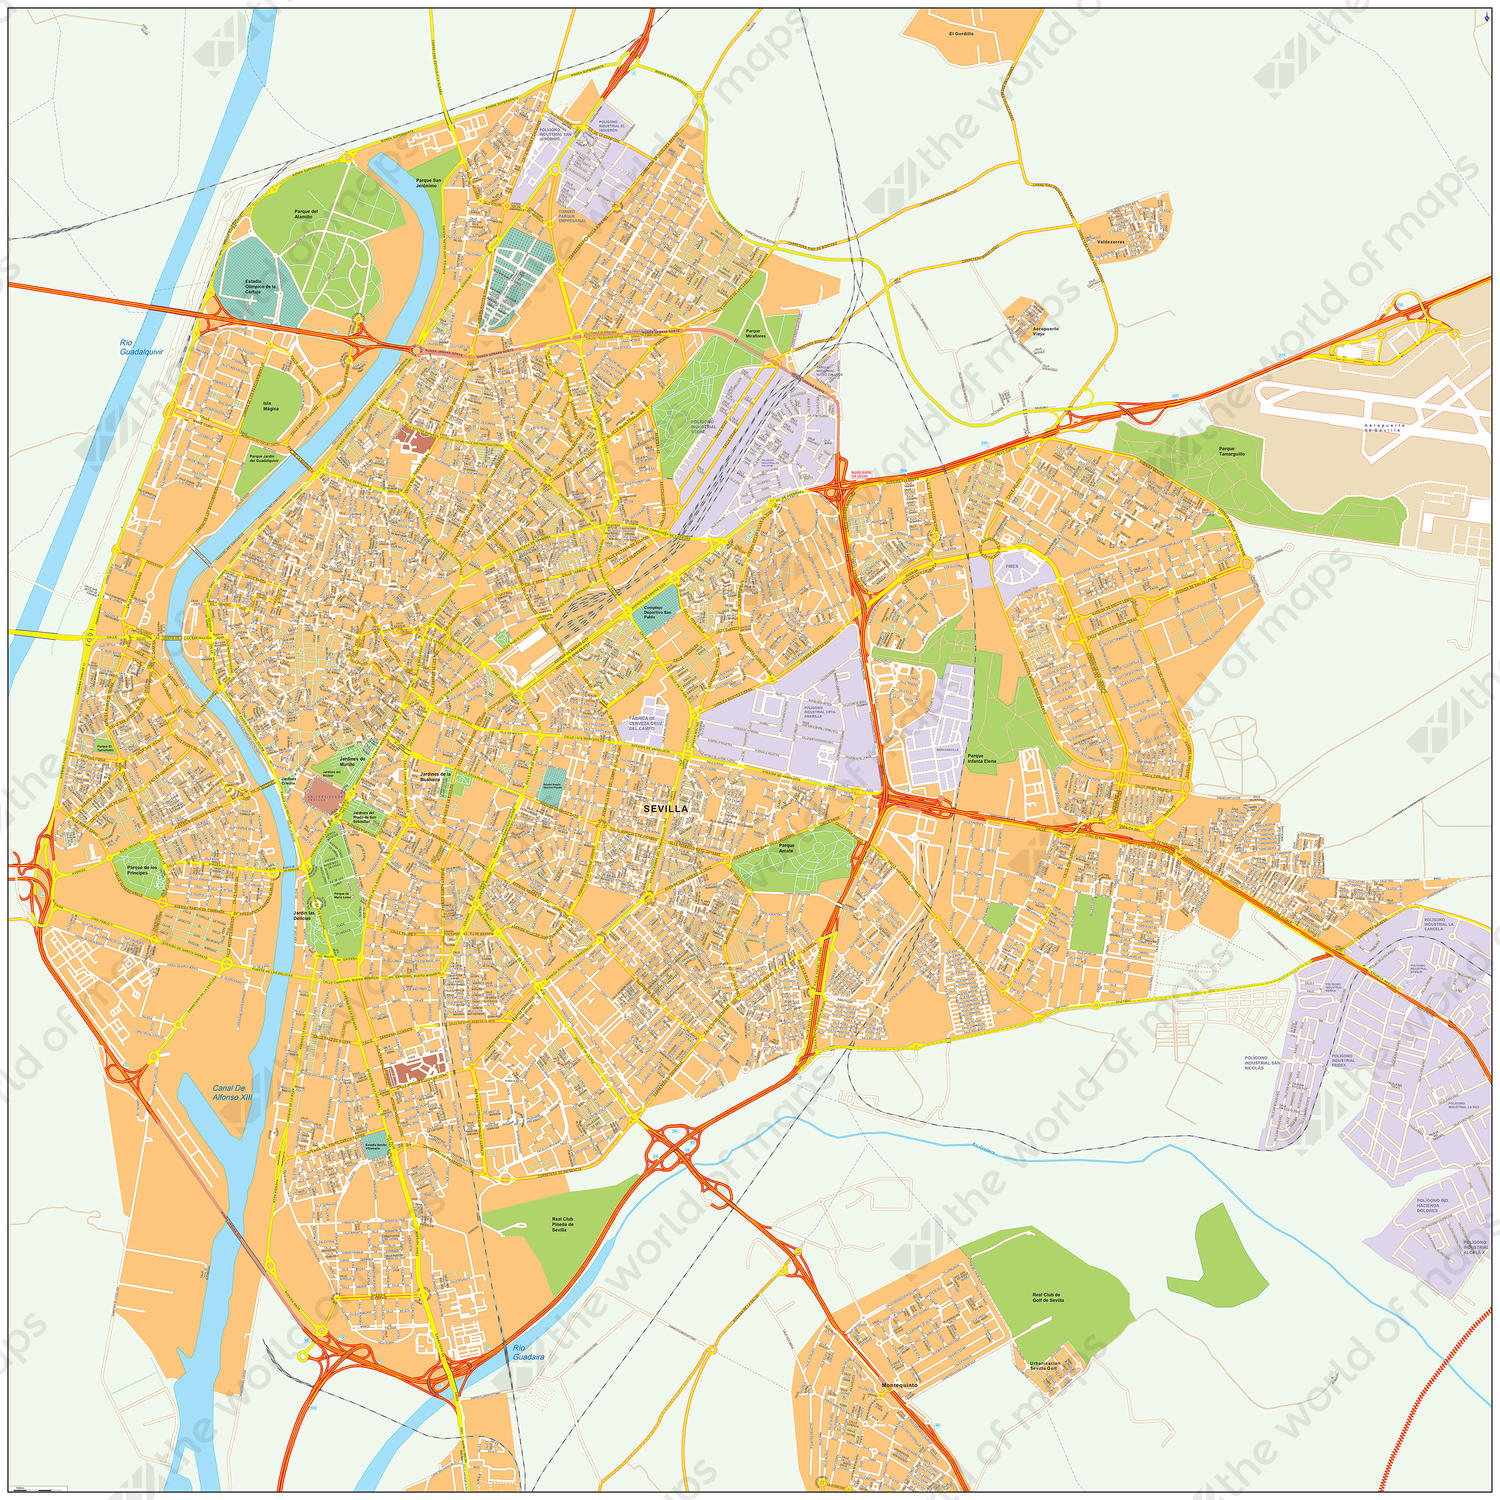 Digital City Map Seville 493 | The World of Maps.com